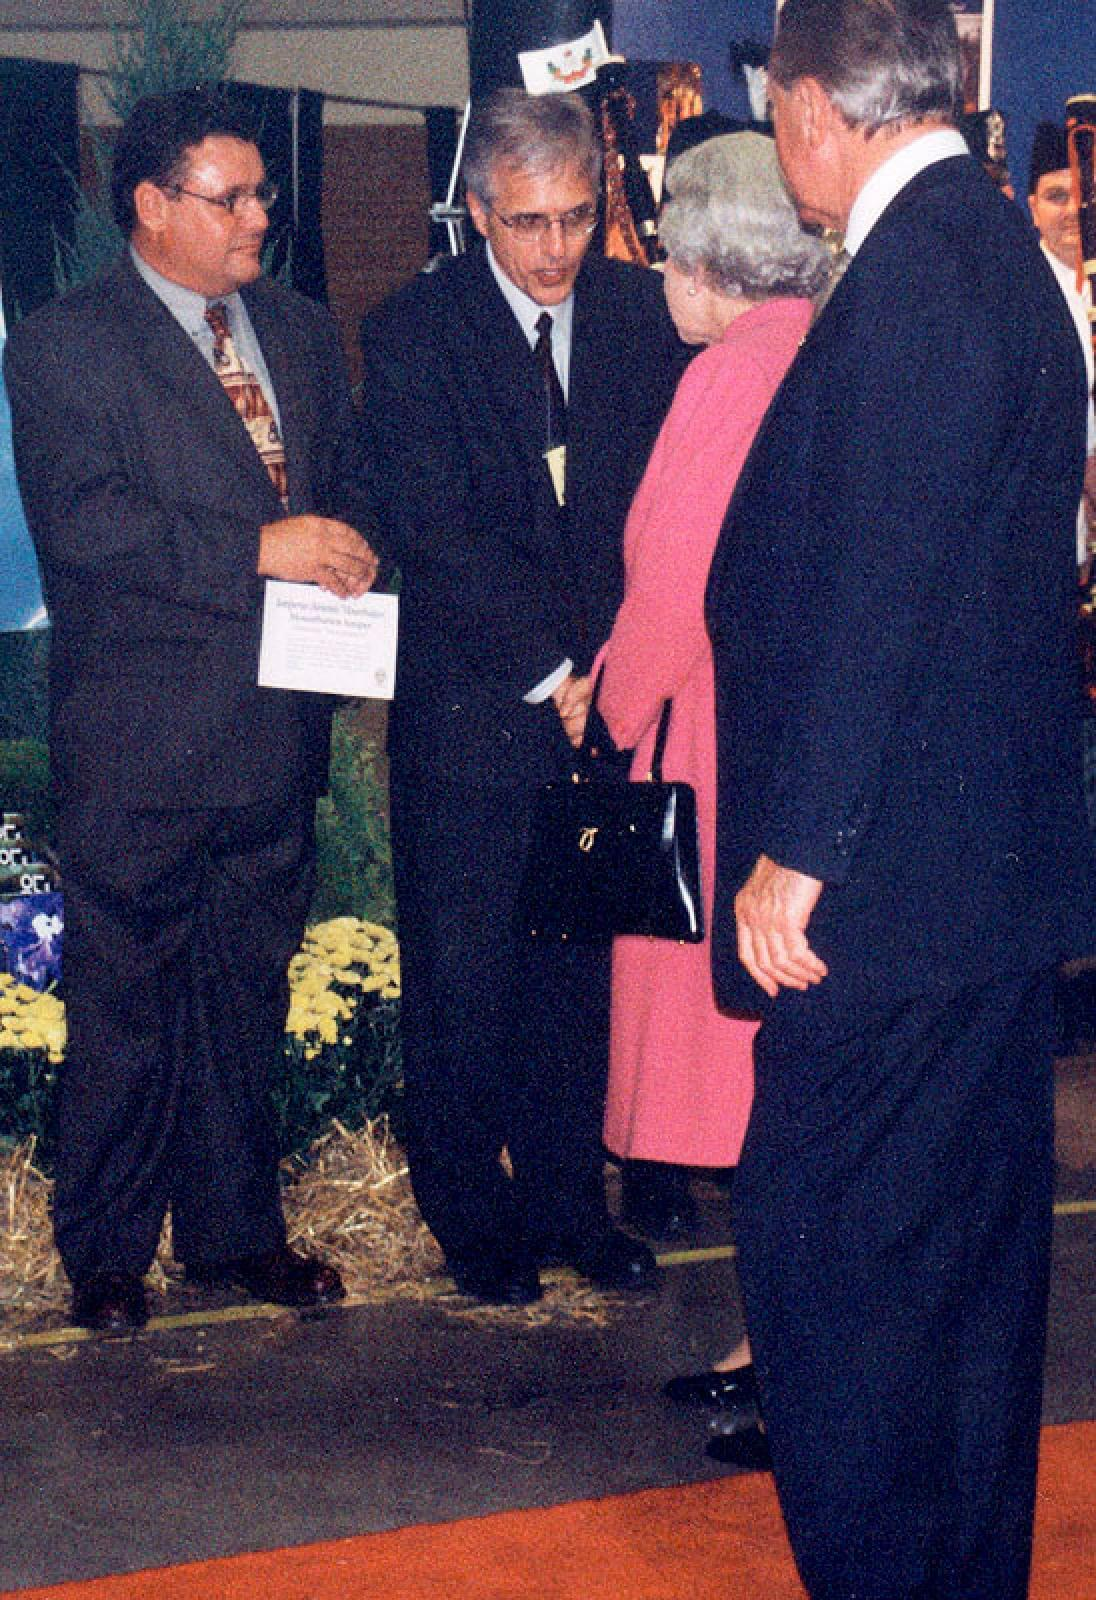 Denis Flanagan (left) and Tony DiGiovanni greeting the Queen.